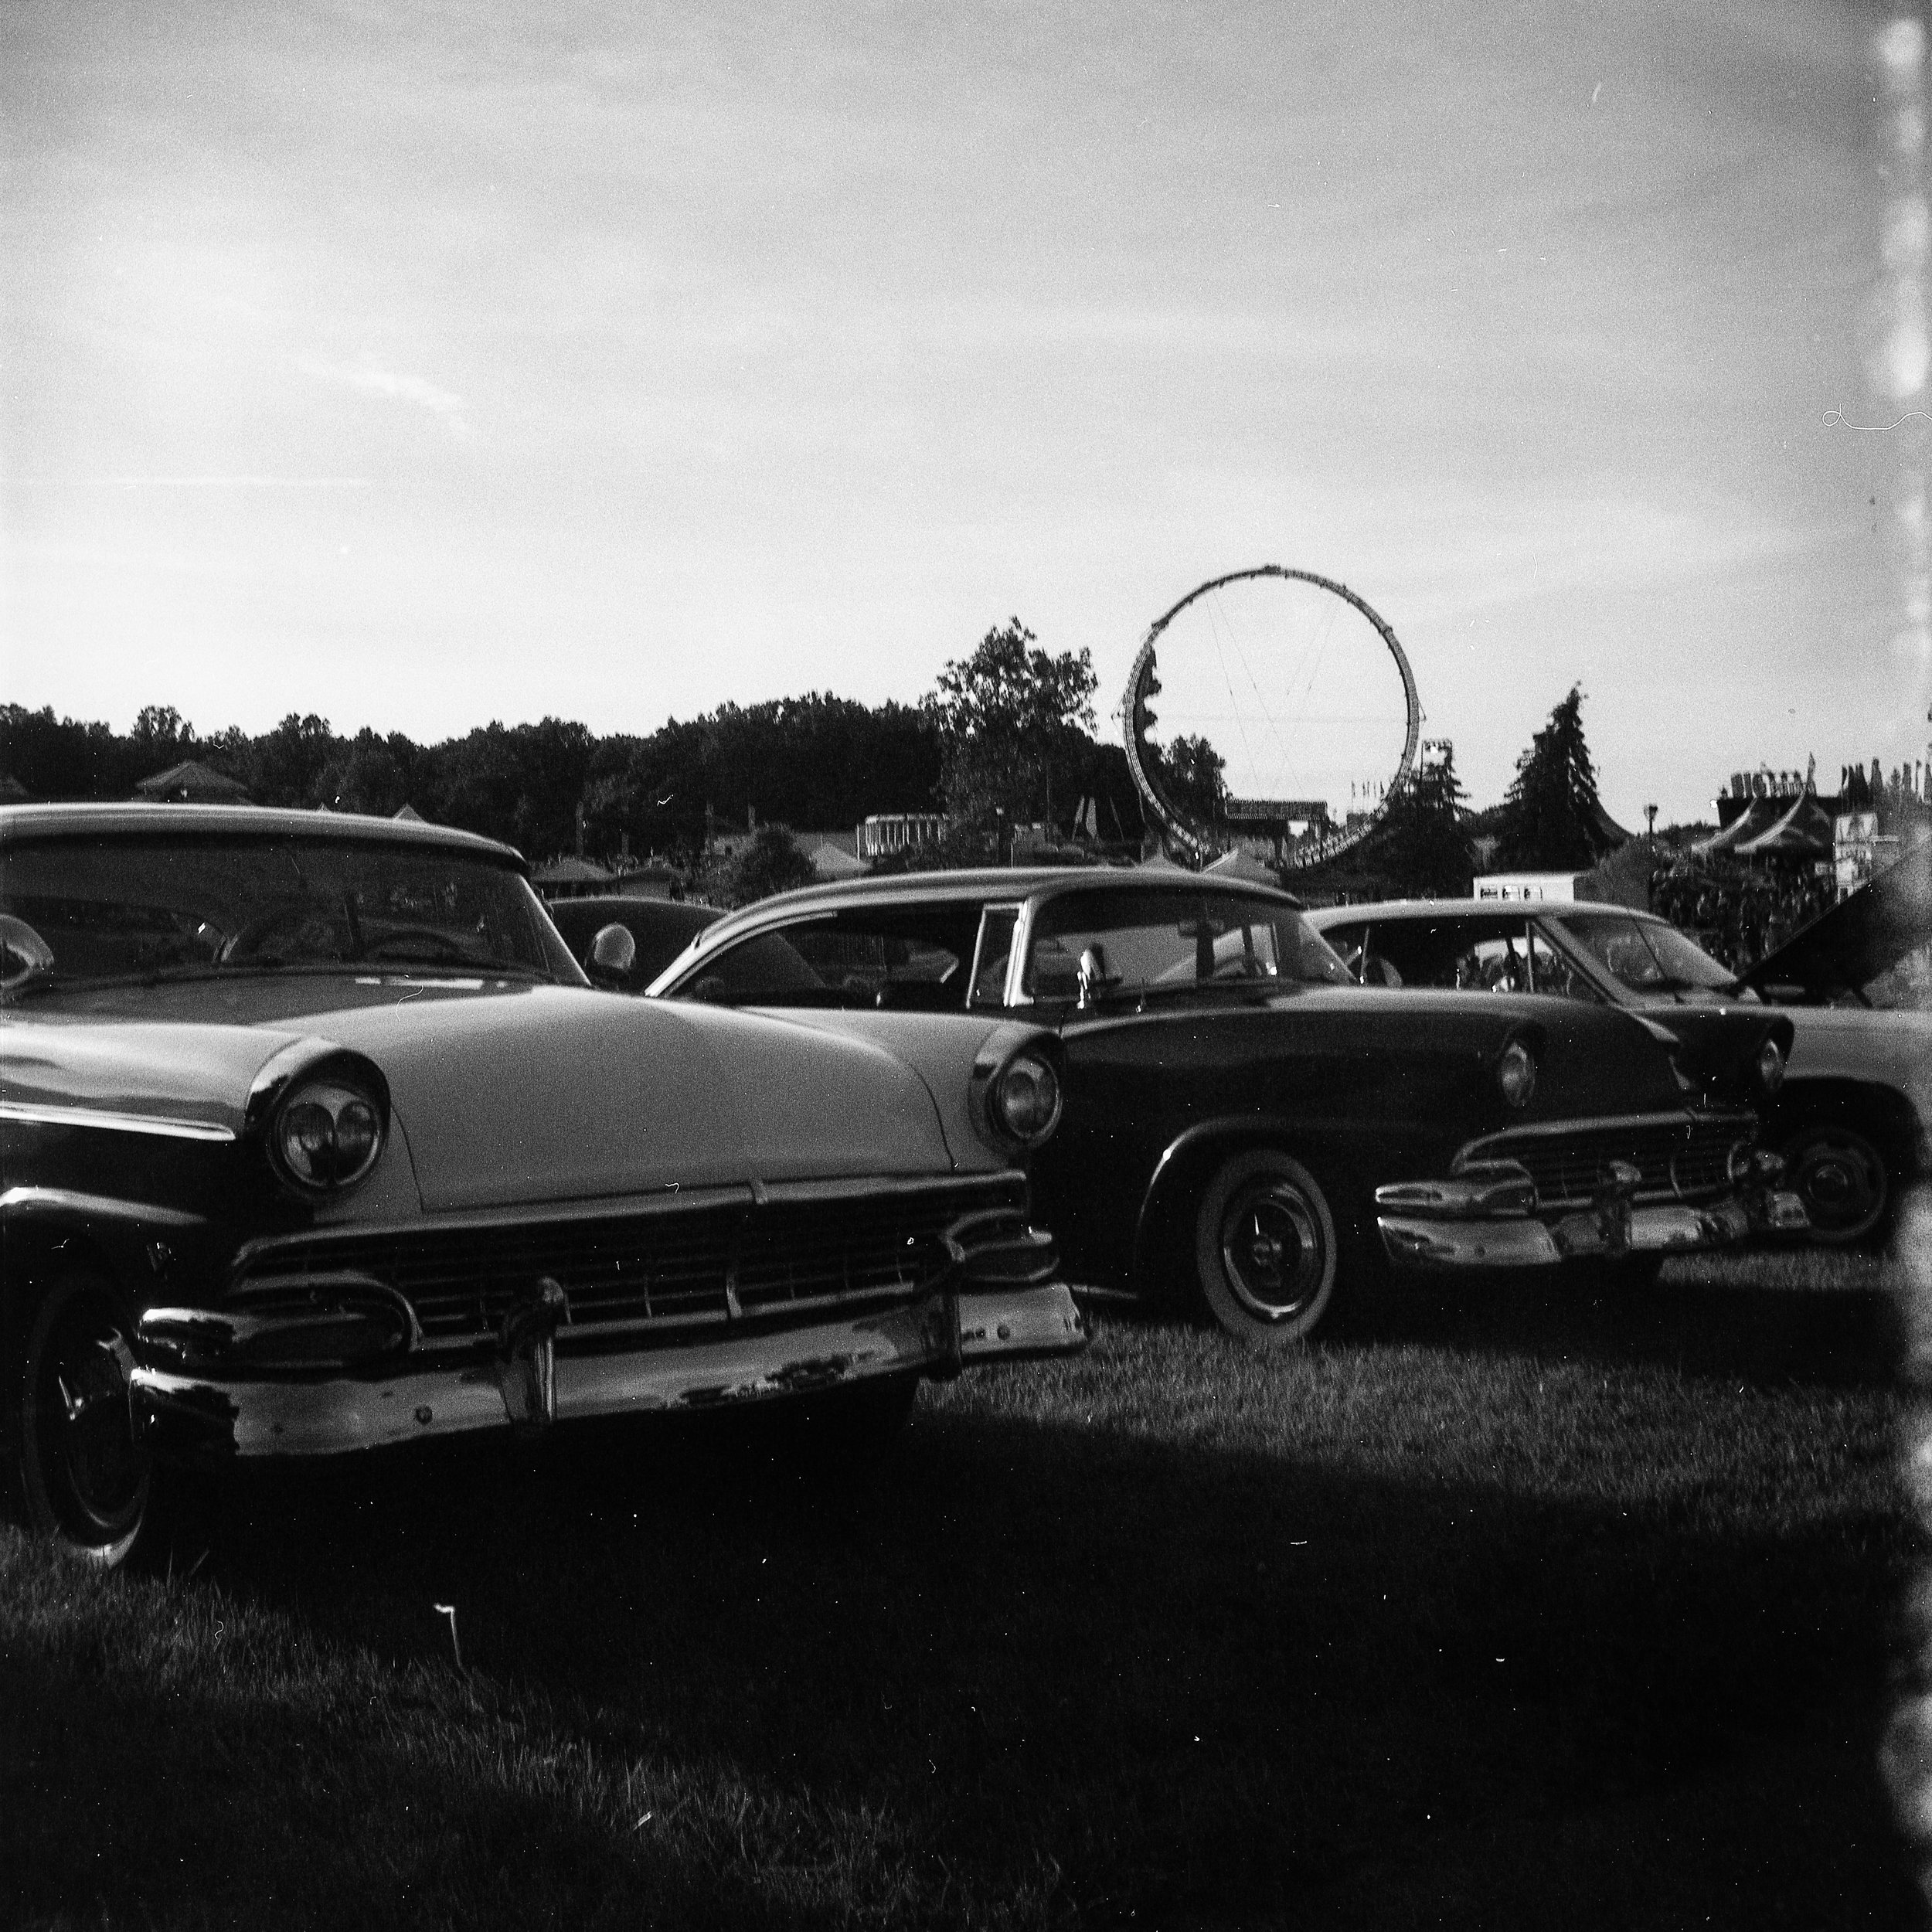 1949 Kodak Brownie Hawkeye Photo Medium Format 620 Film Zoe Kissel Photo Riverview Summerfest Cars